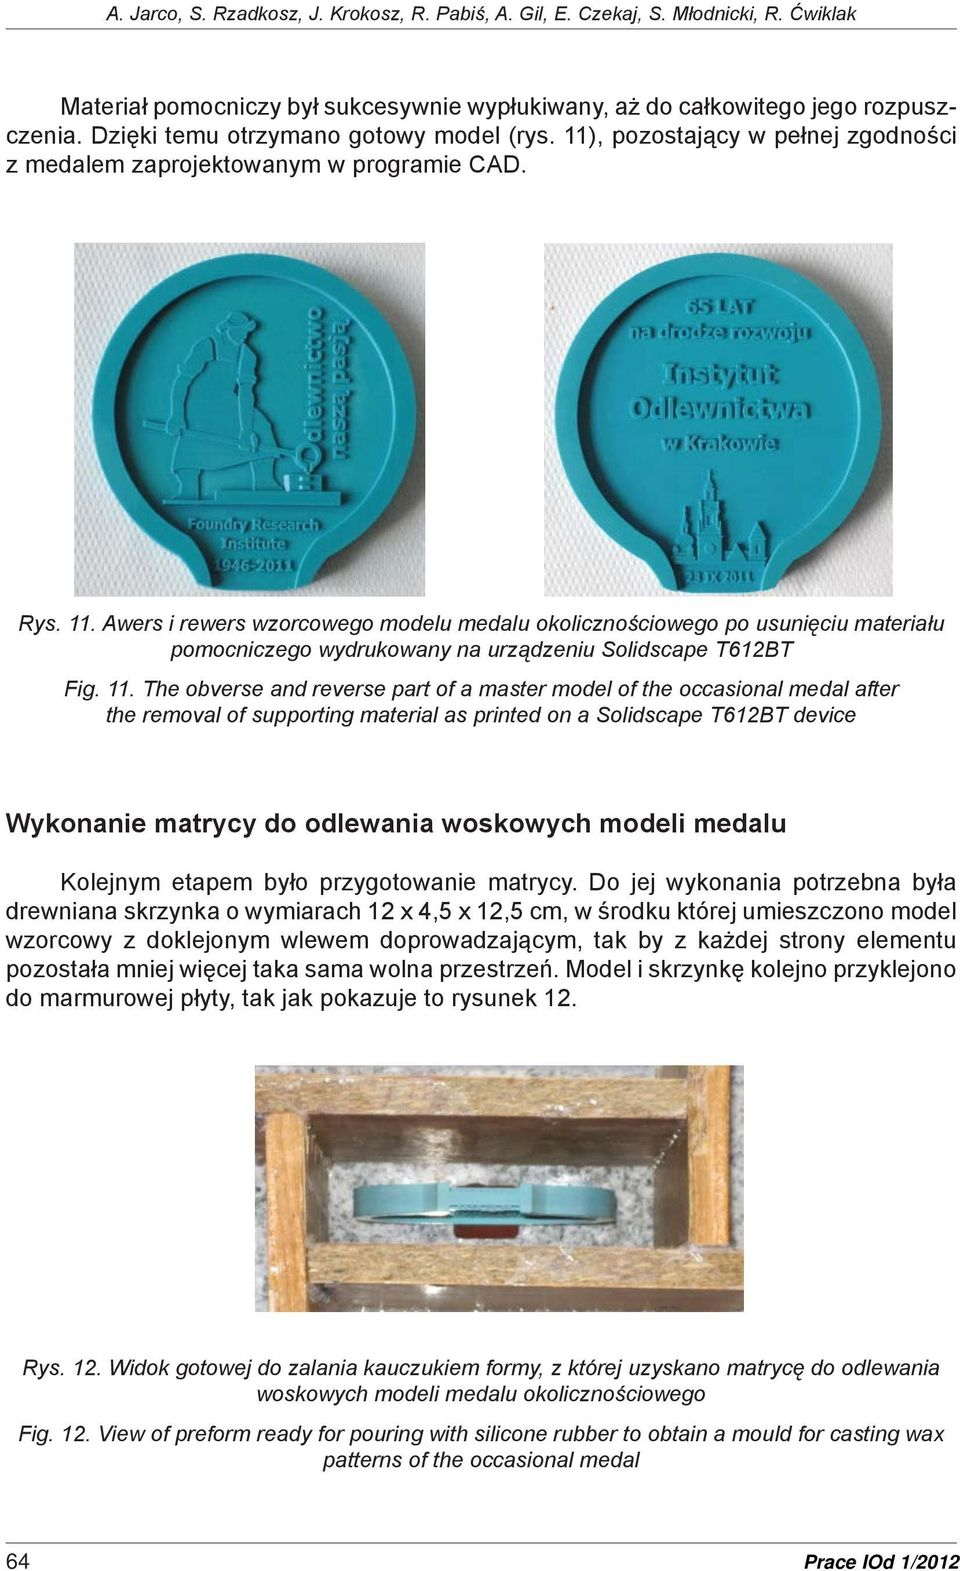 11. The obverse and reverse part of a master model of the occasional medal after the removal of supporting material as printed on a Solidscape T612BT device Wykonanie matrycy do odlewania woskowych